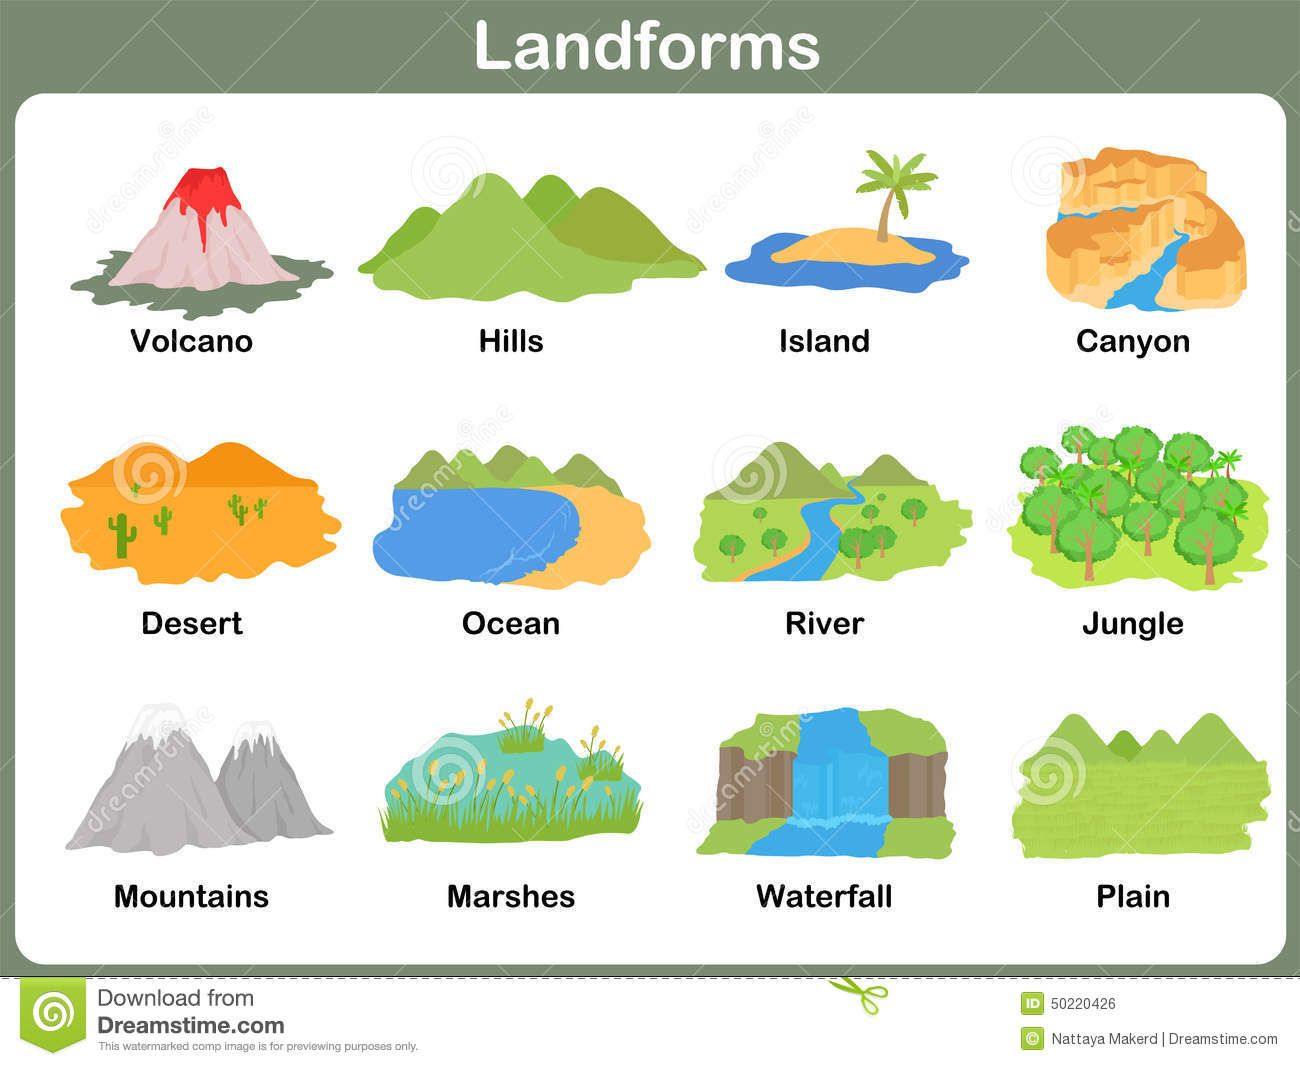 Worksheets Worksheets On Landforms landforms for children google search social studies leaning kids worksheet buy this stock vector on shutterstock find other images